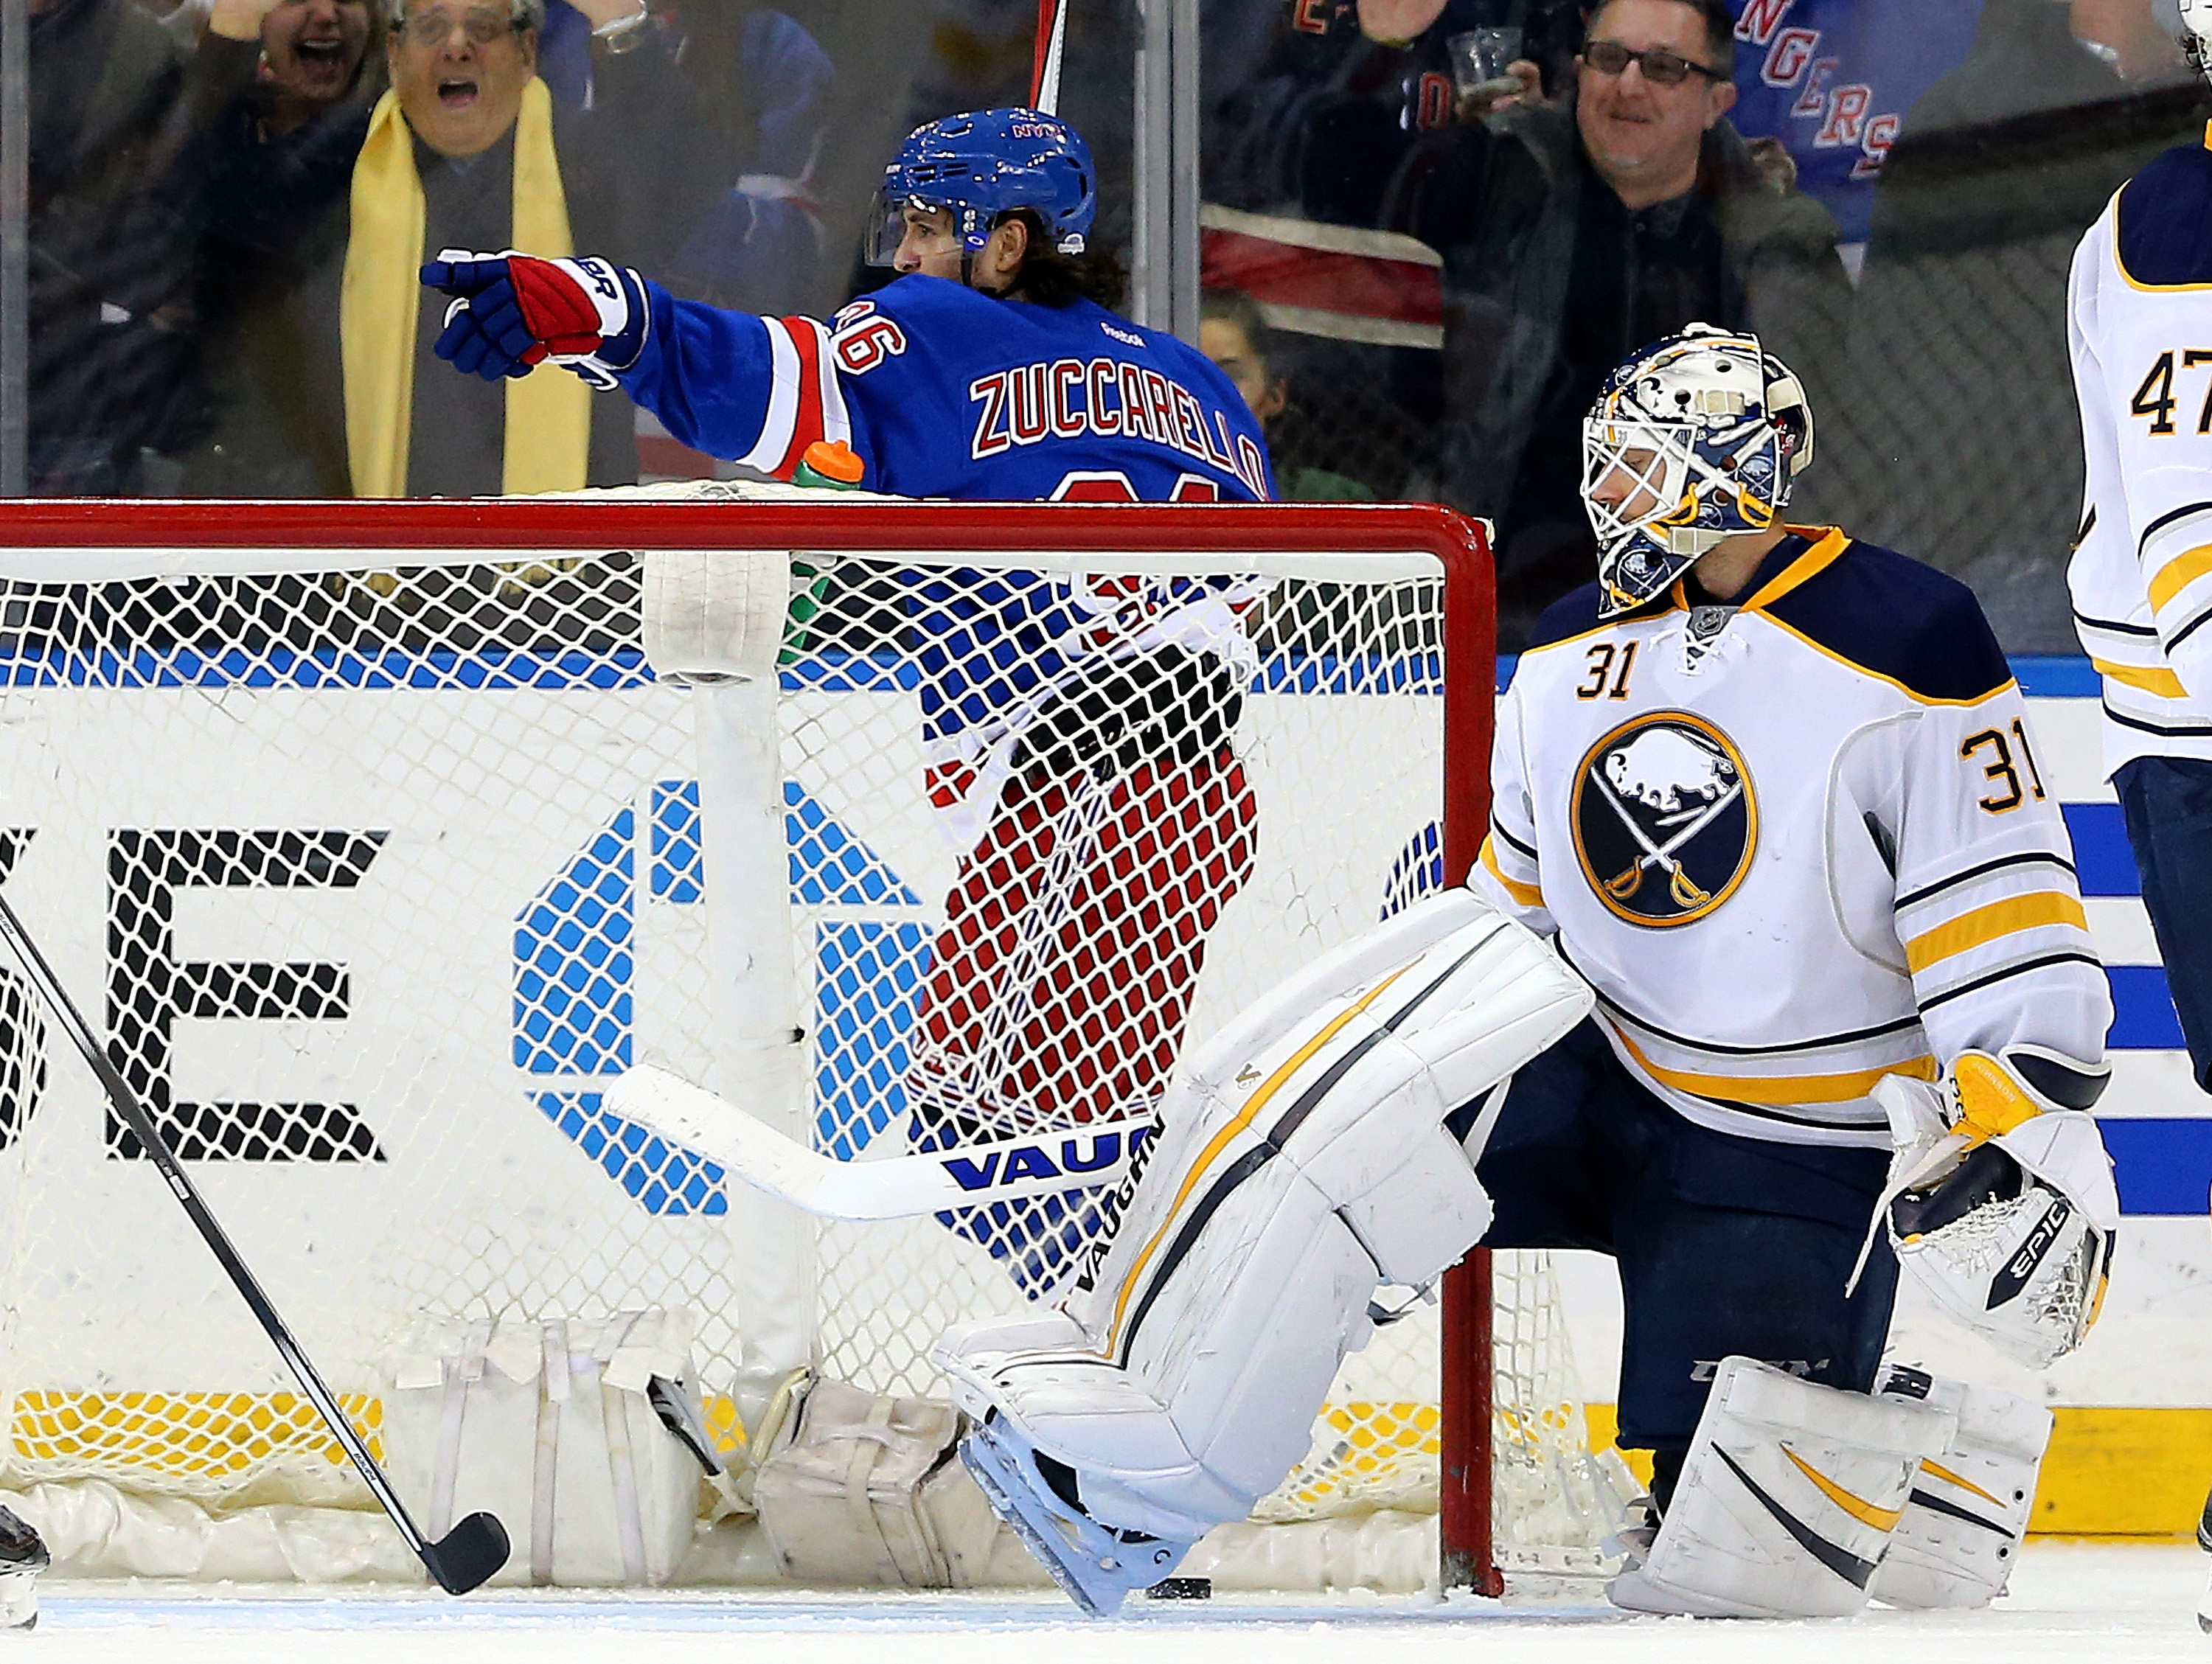 Mats Zuccarello of the New York Rangers celebrates his goal as goalie Chad Johnson of the Buffalo Sabres looks on in the third period at Madison Square Garden. (Getty Images)